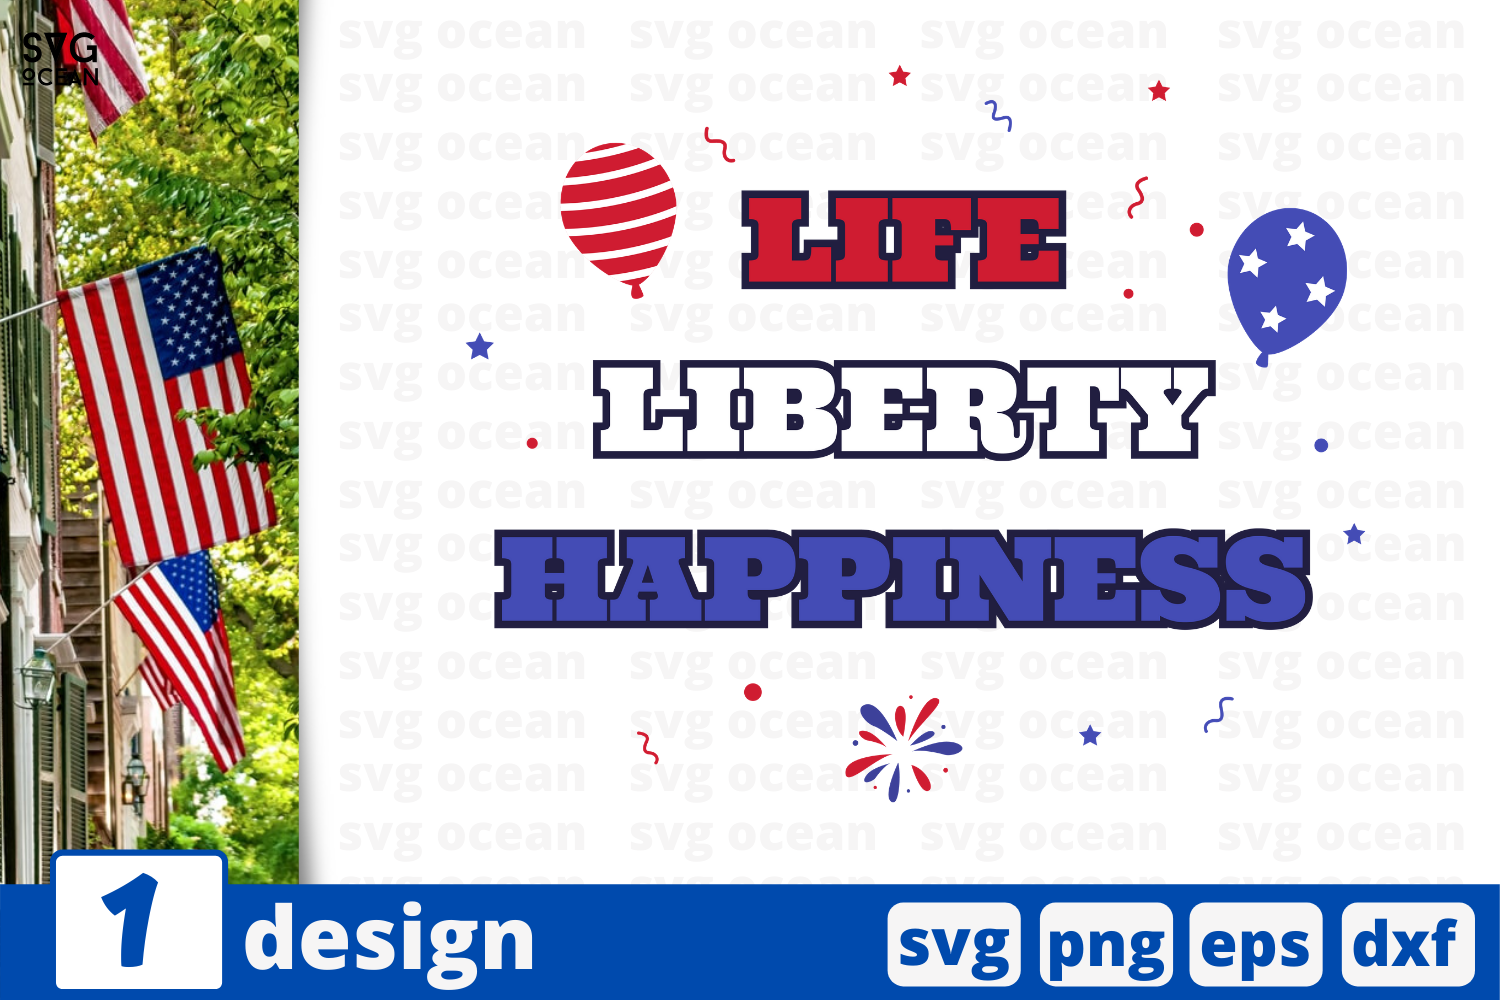 Download Free 1 Life Liberty Happiness Svg Bundle Graphic By Svgocean for Cricut Explore, Silhouette and other cutting machines.